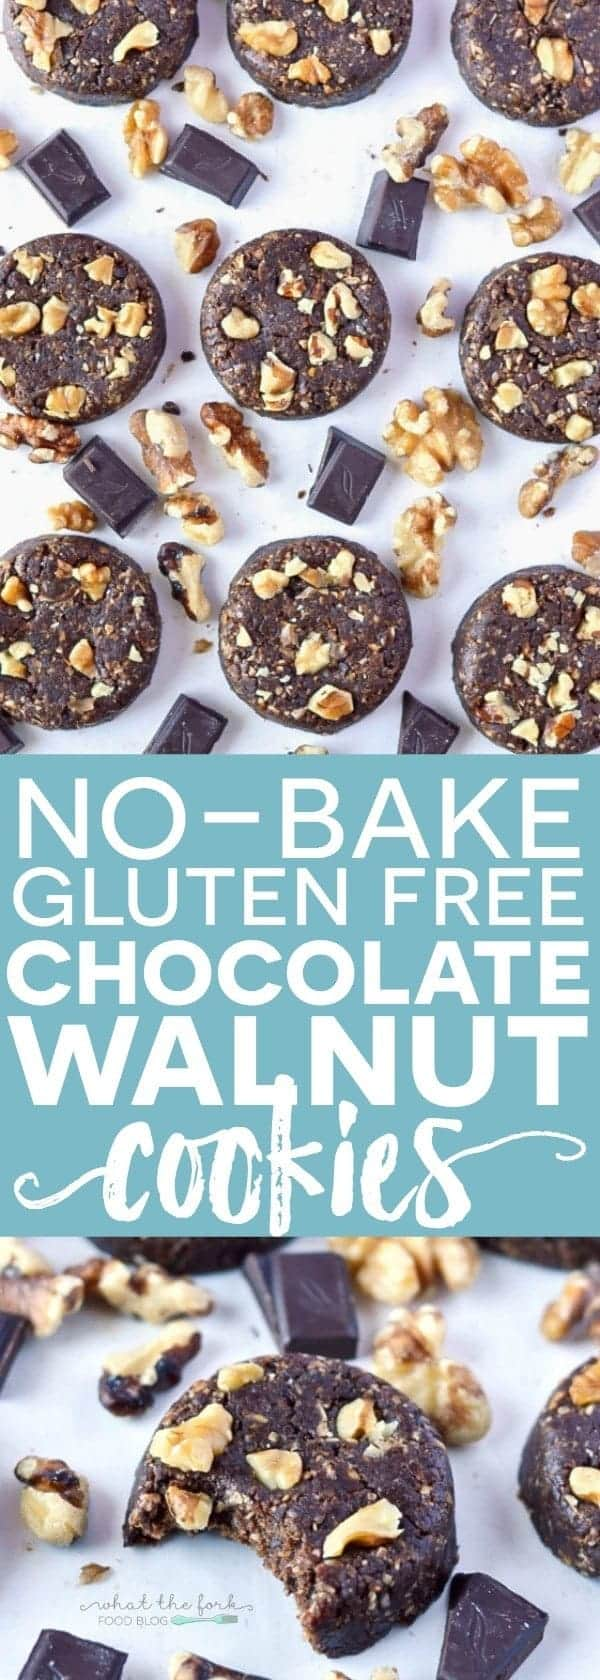 Super easy no-bake Gluten Free Chocolate Walnut Cookies (dairy free + naturally sweetened). Recipe from @whattheforkblog | whattheforkfoodblog.com